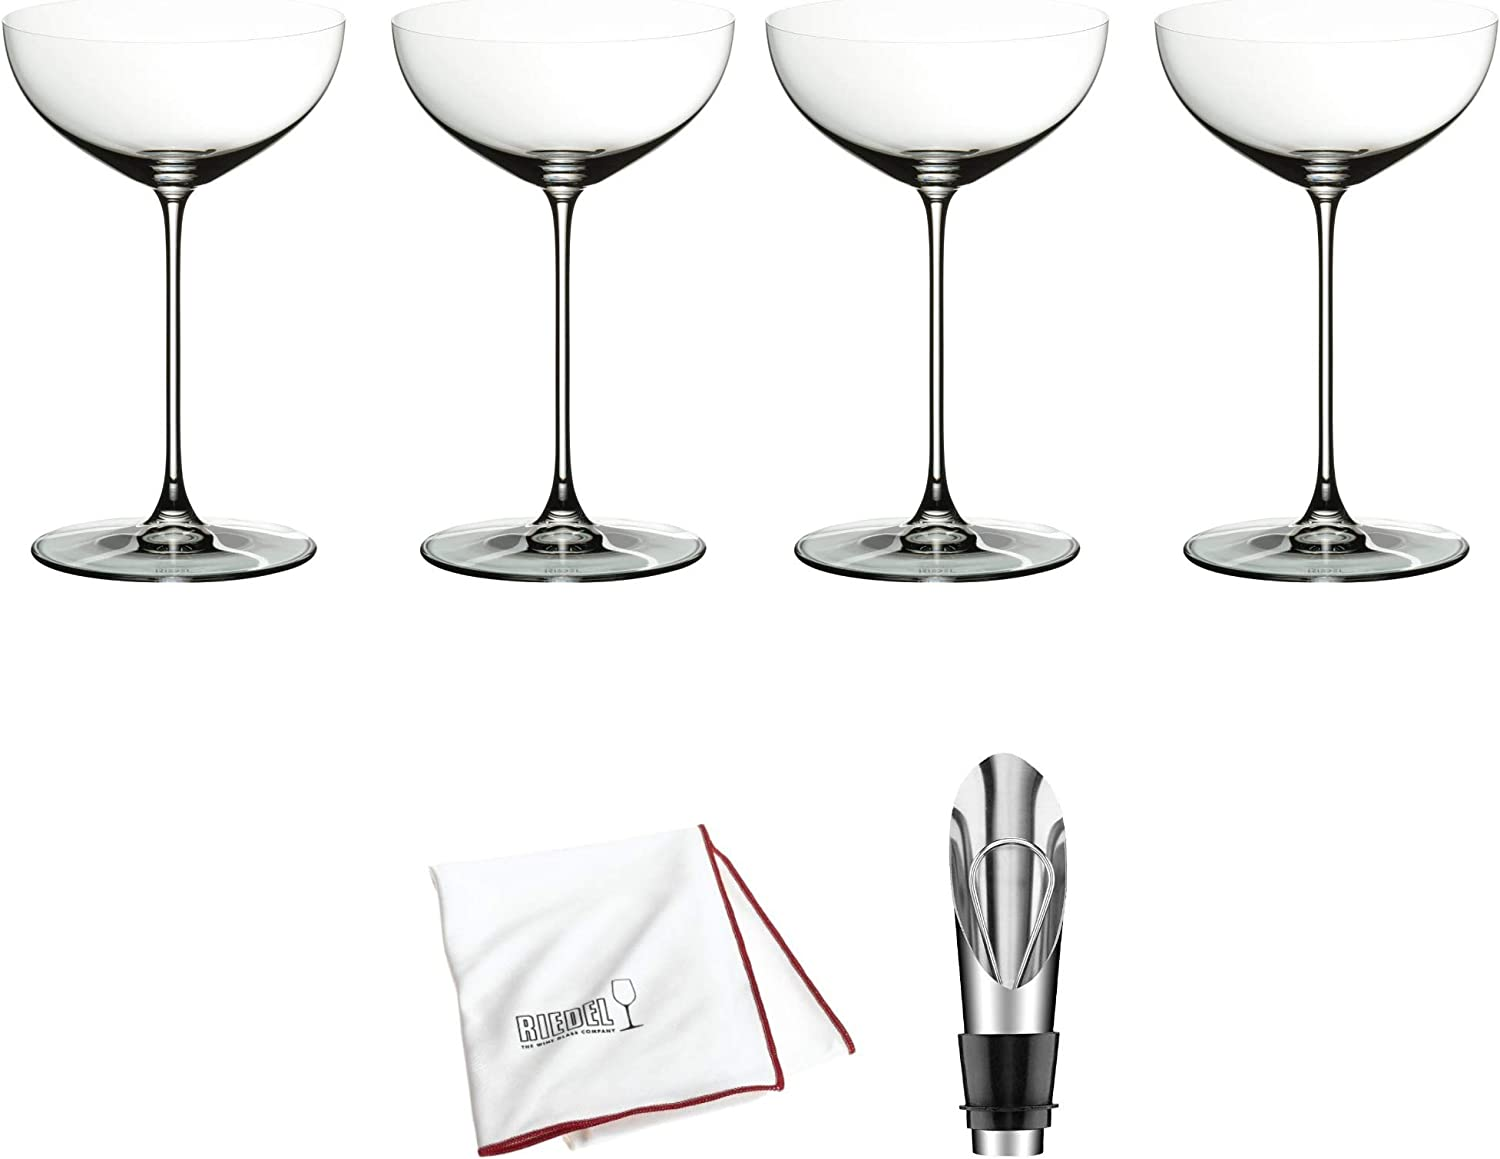 Riedel Bombing free shipping Veritas Moscato Coupe Martini Glass of Super Special SALE held 4 W Pack Includes